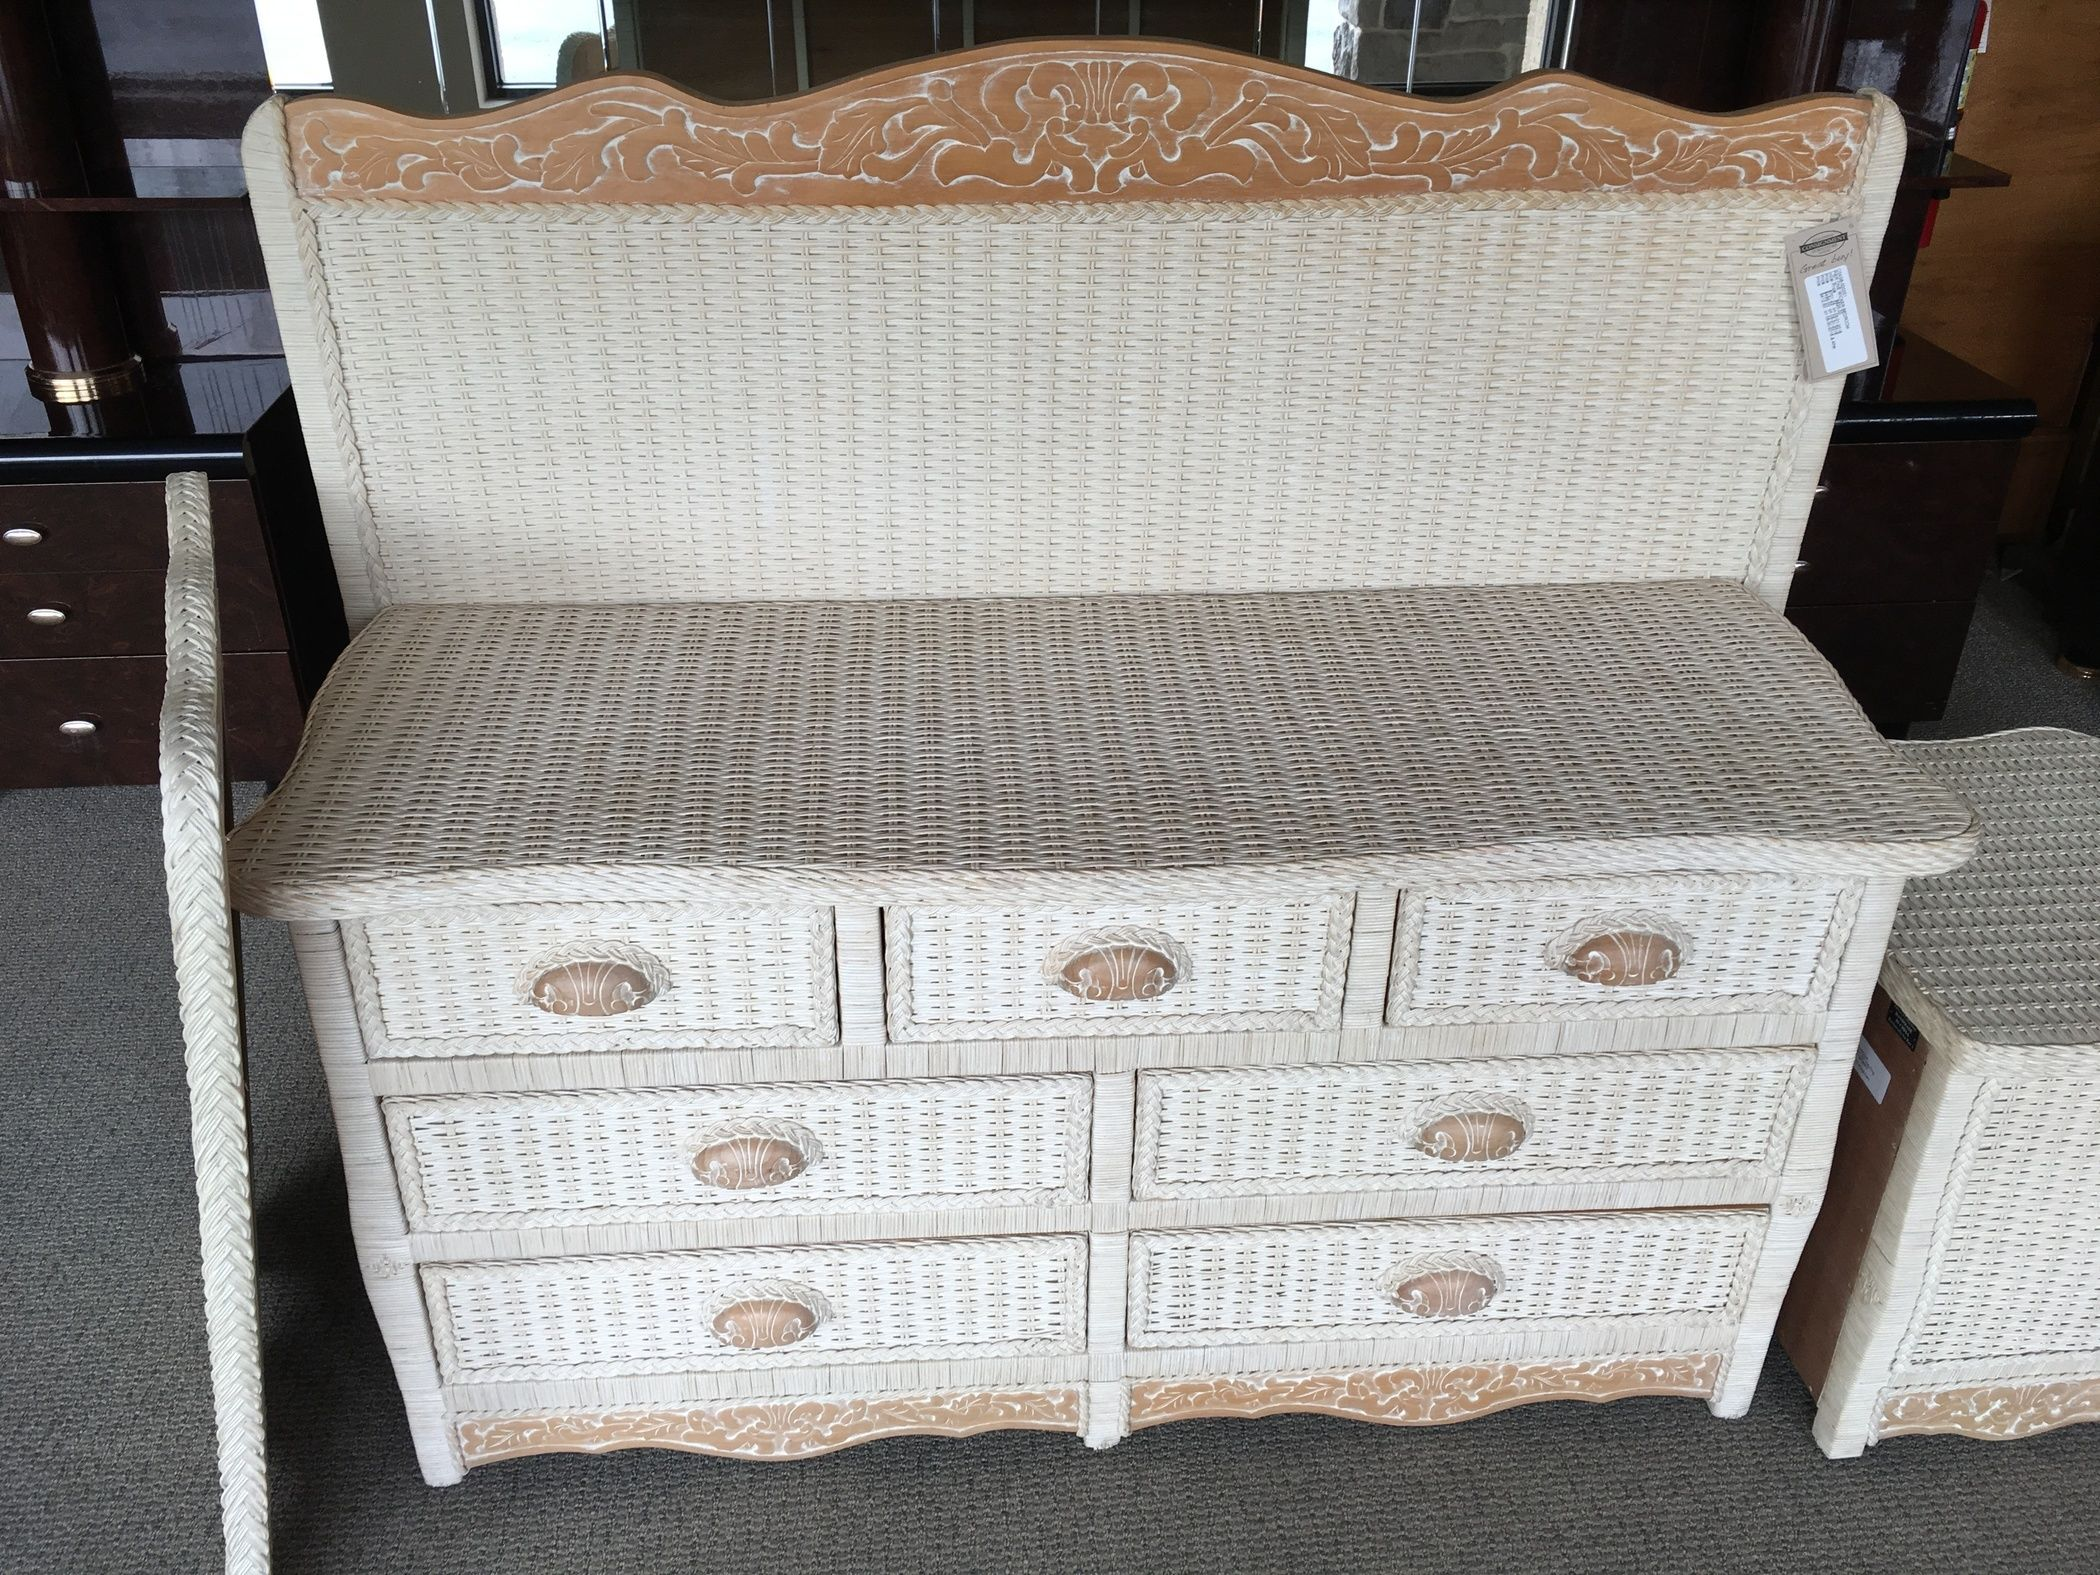 Wicker Bedroom Furniture Pier One Pier One Wicker Bedroom Allegheny Furniture Consignment